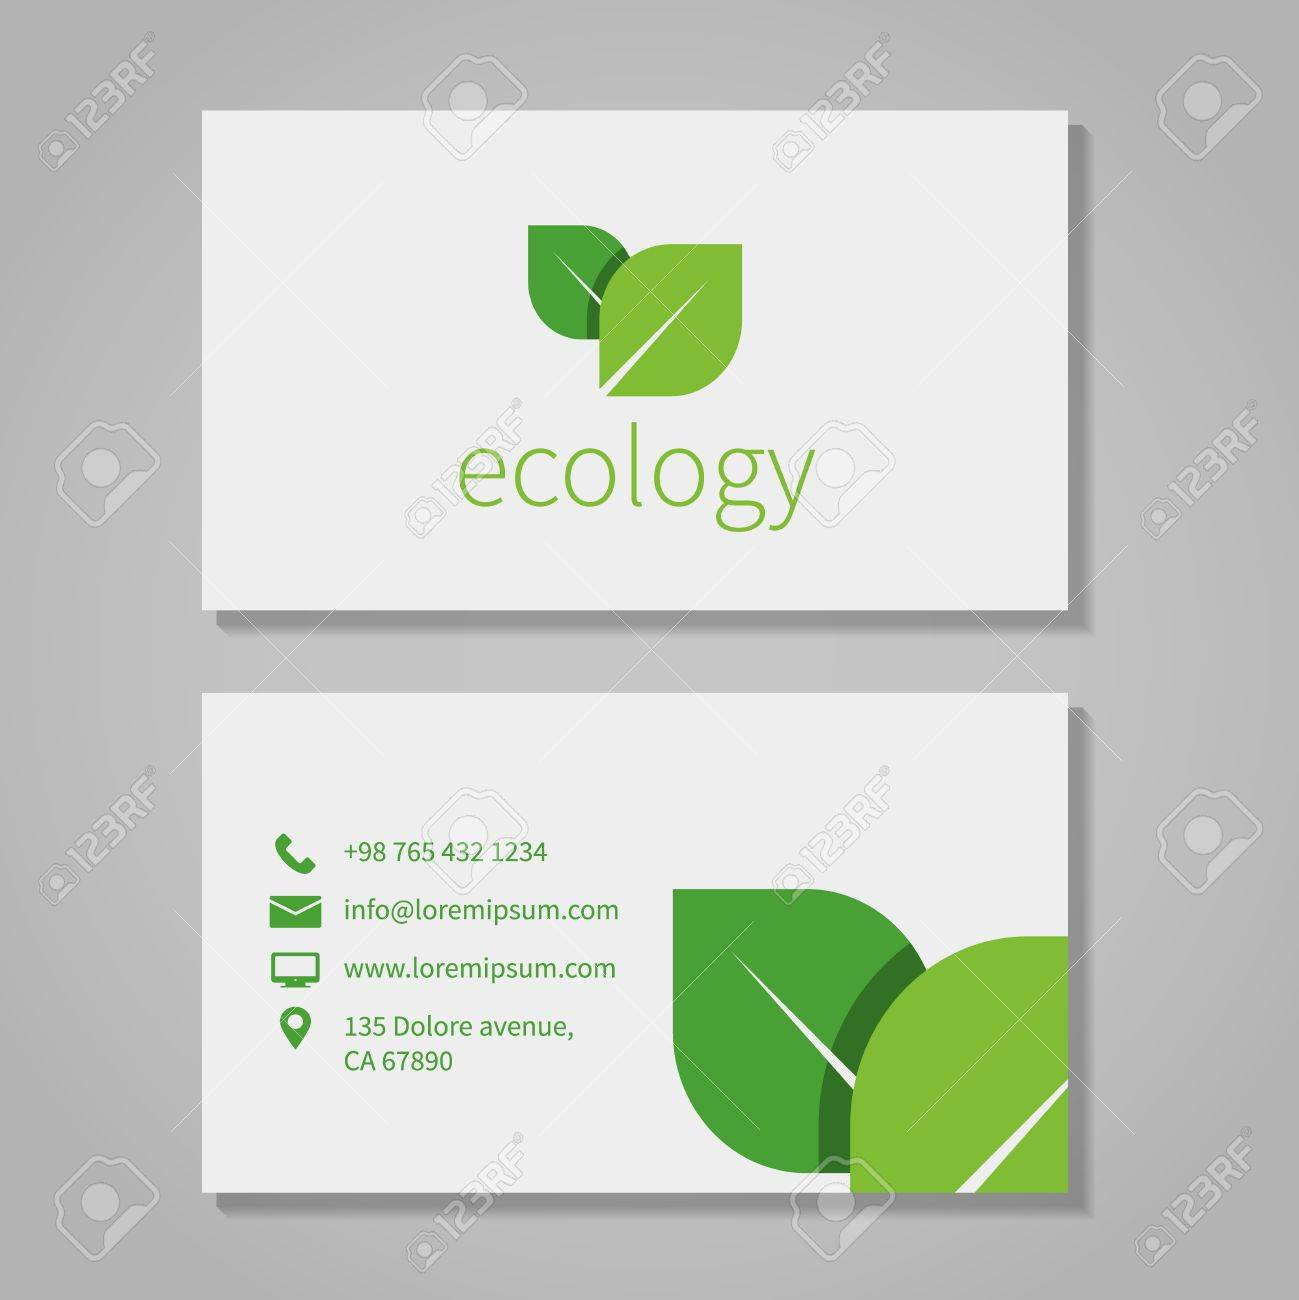 Ecological or eco energy company business card template with ecological or eco energy company business card template with green leaves stock vector 36808021 reheart Image collections